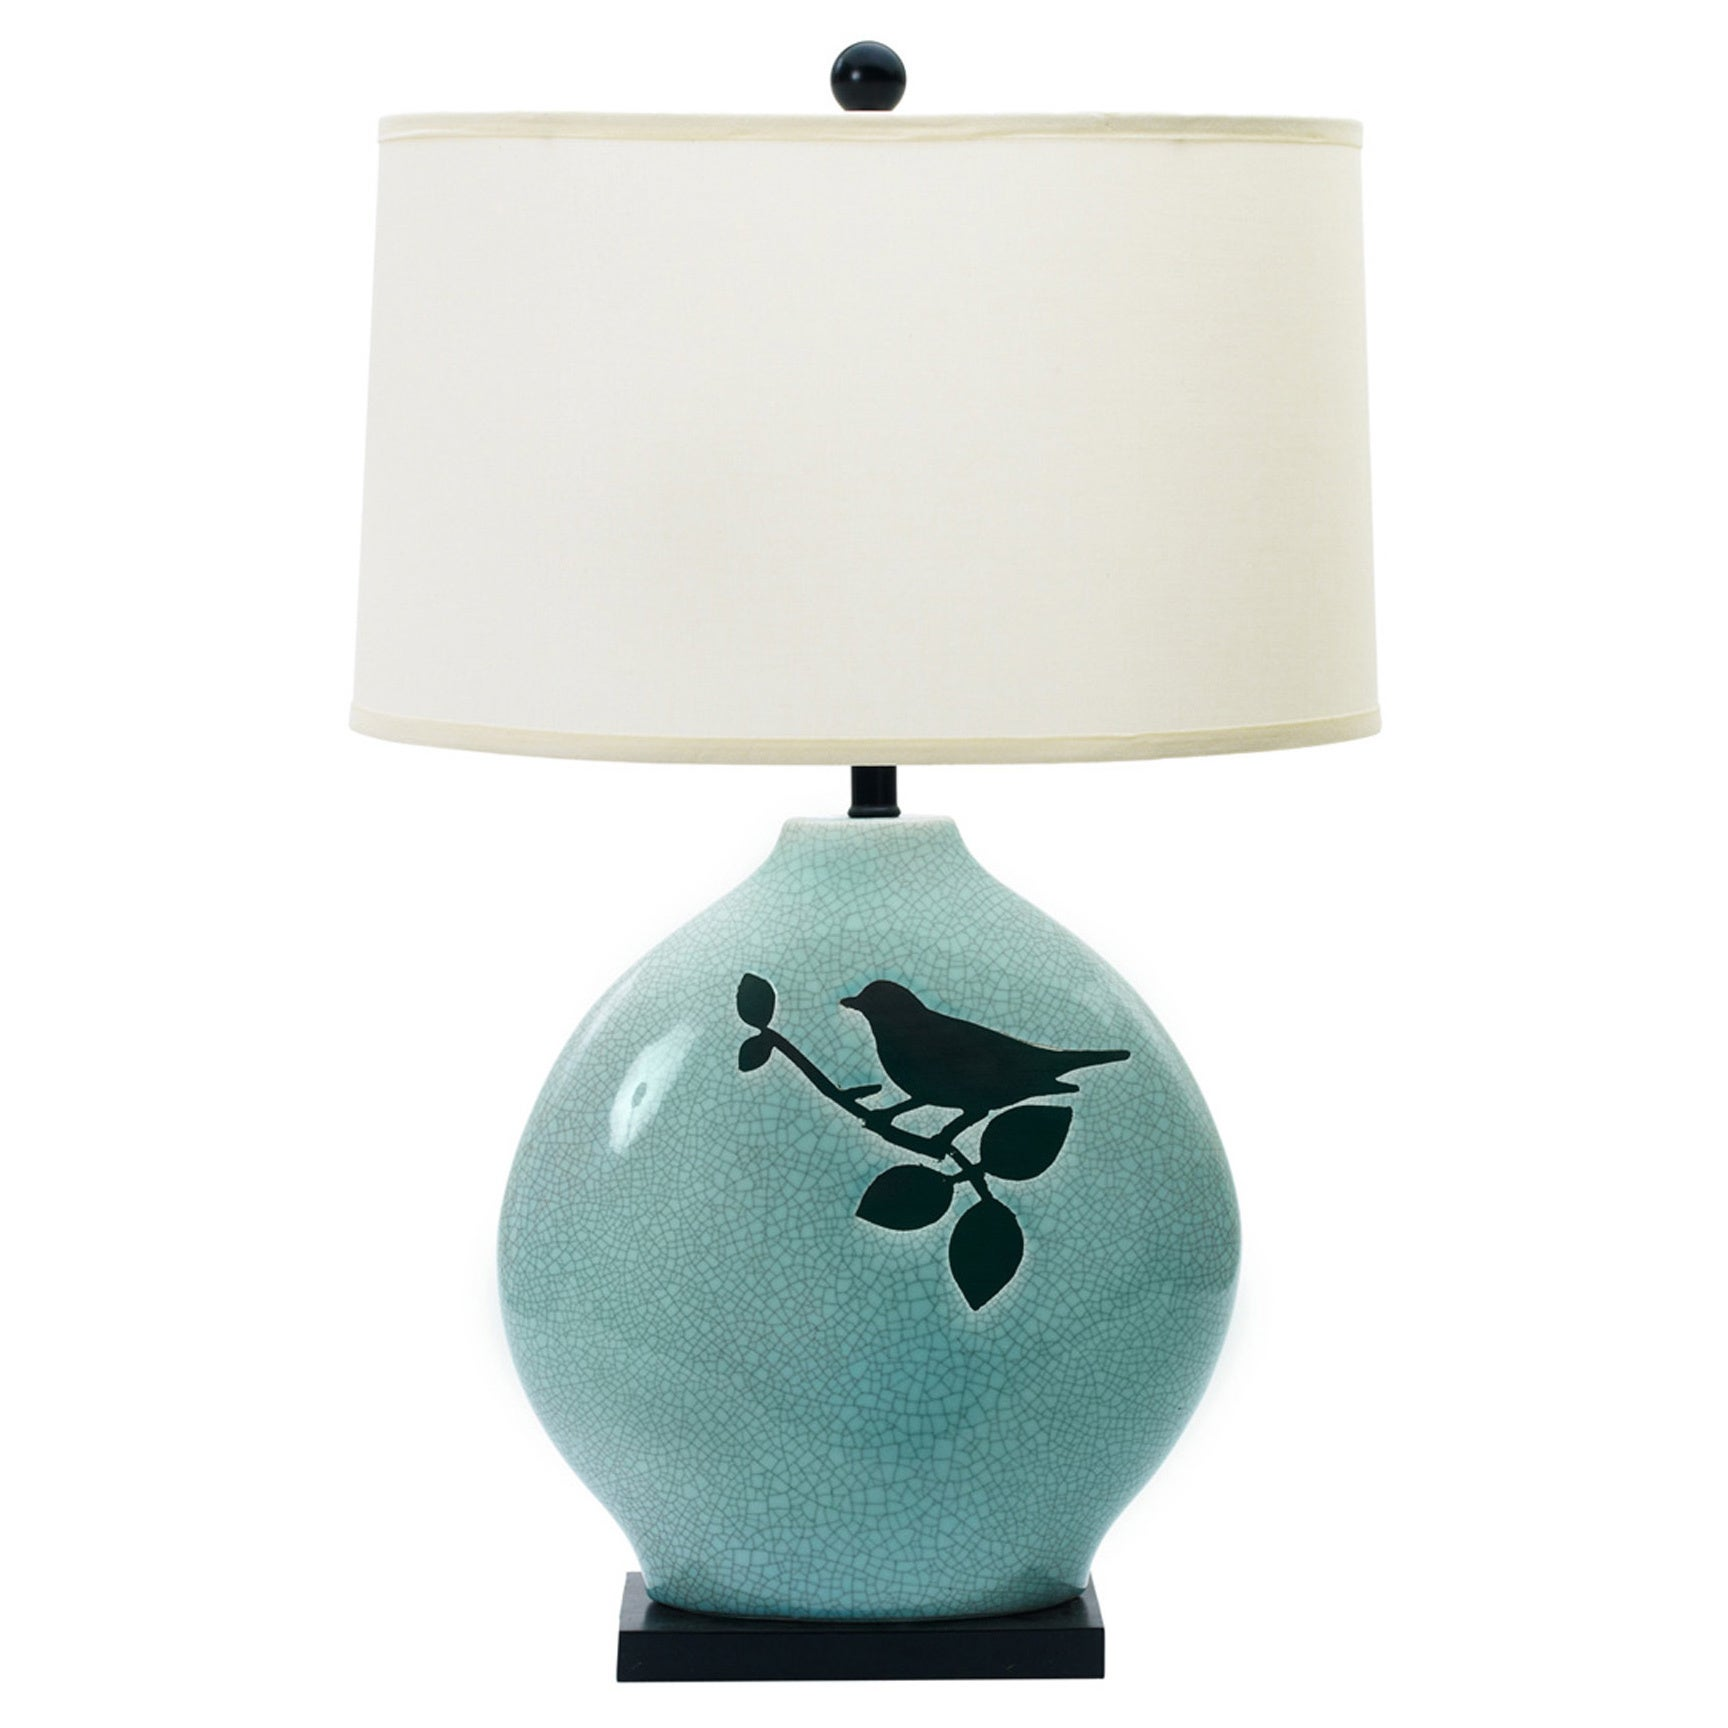 Dexsa Spa Blue Crackle w/ Bird 30-inch Ceramic Table Lamp...